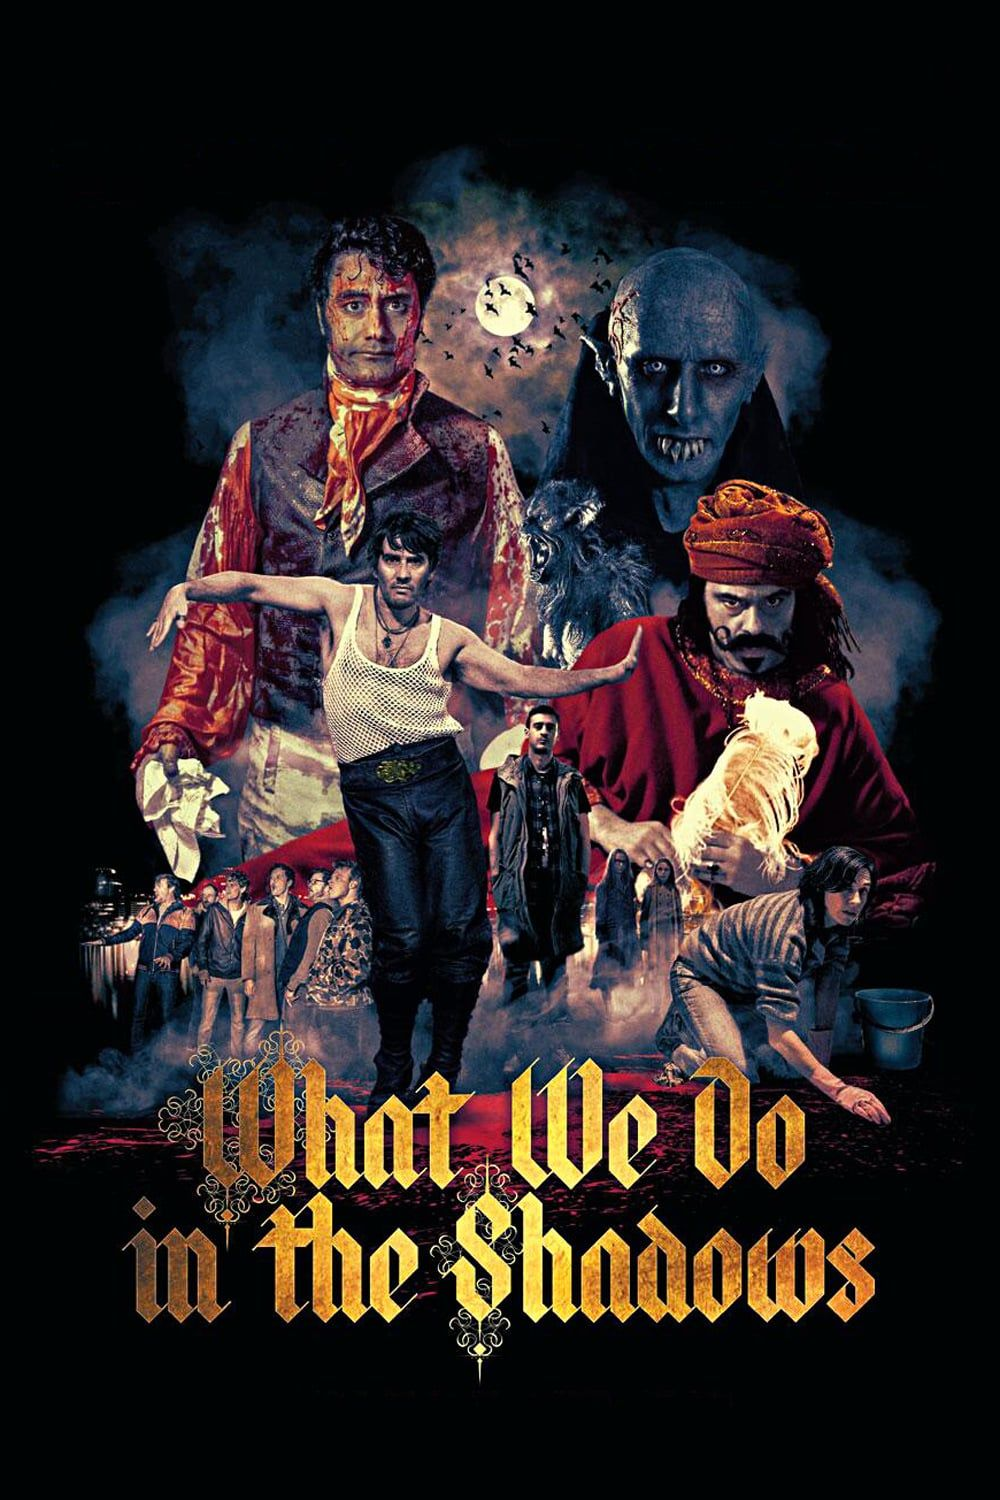 .What We Do in the Shadows FULL MOVIE Streaming Online in